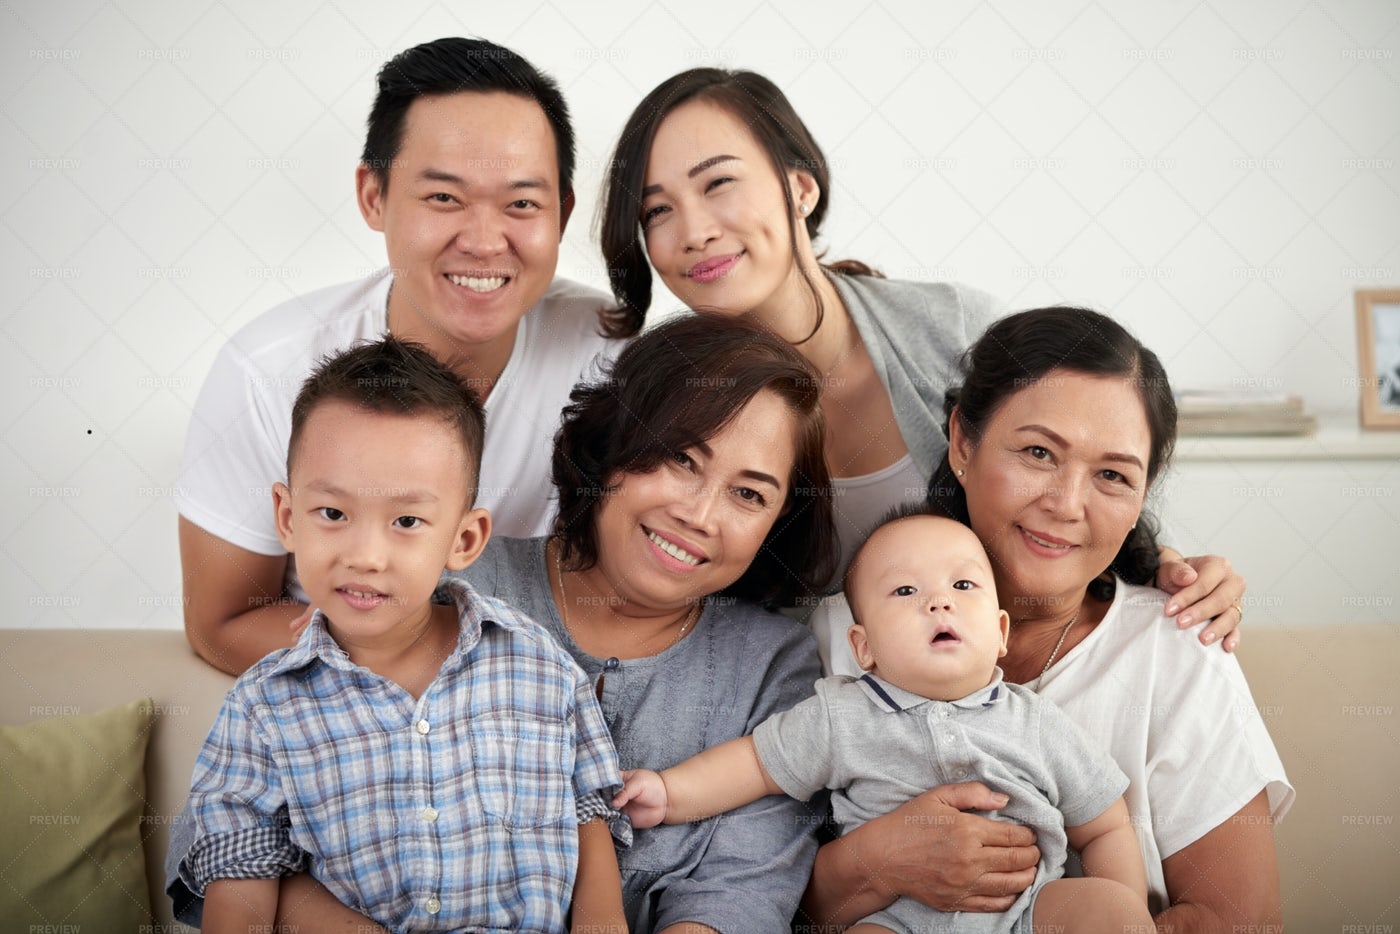 Happy Asian Family Posing Together: Stock Photos